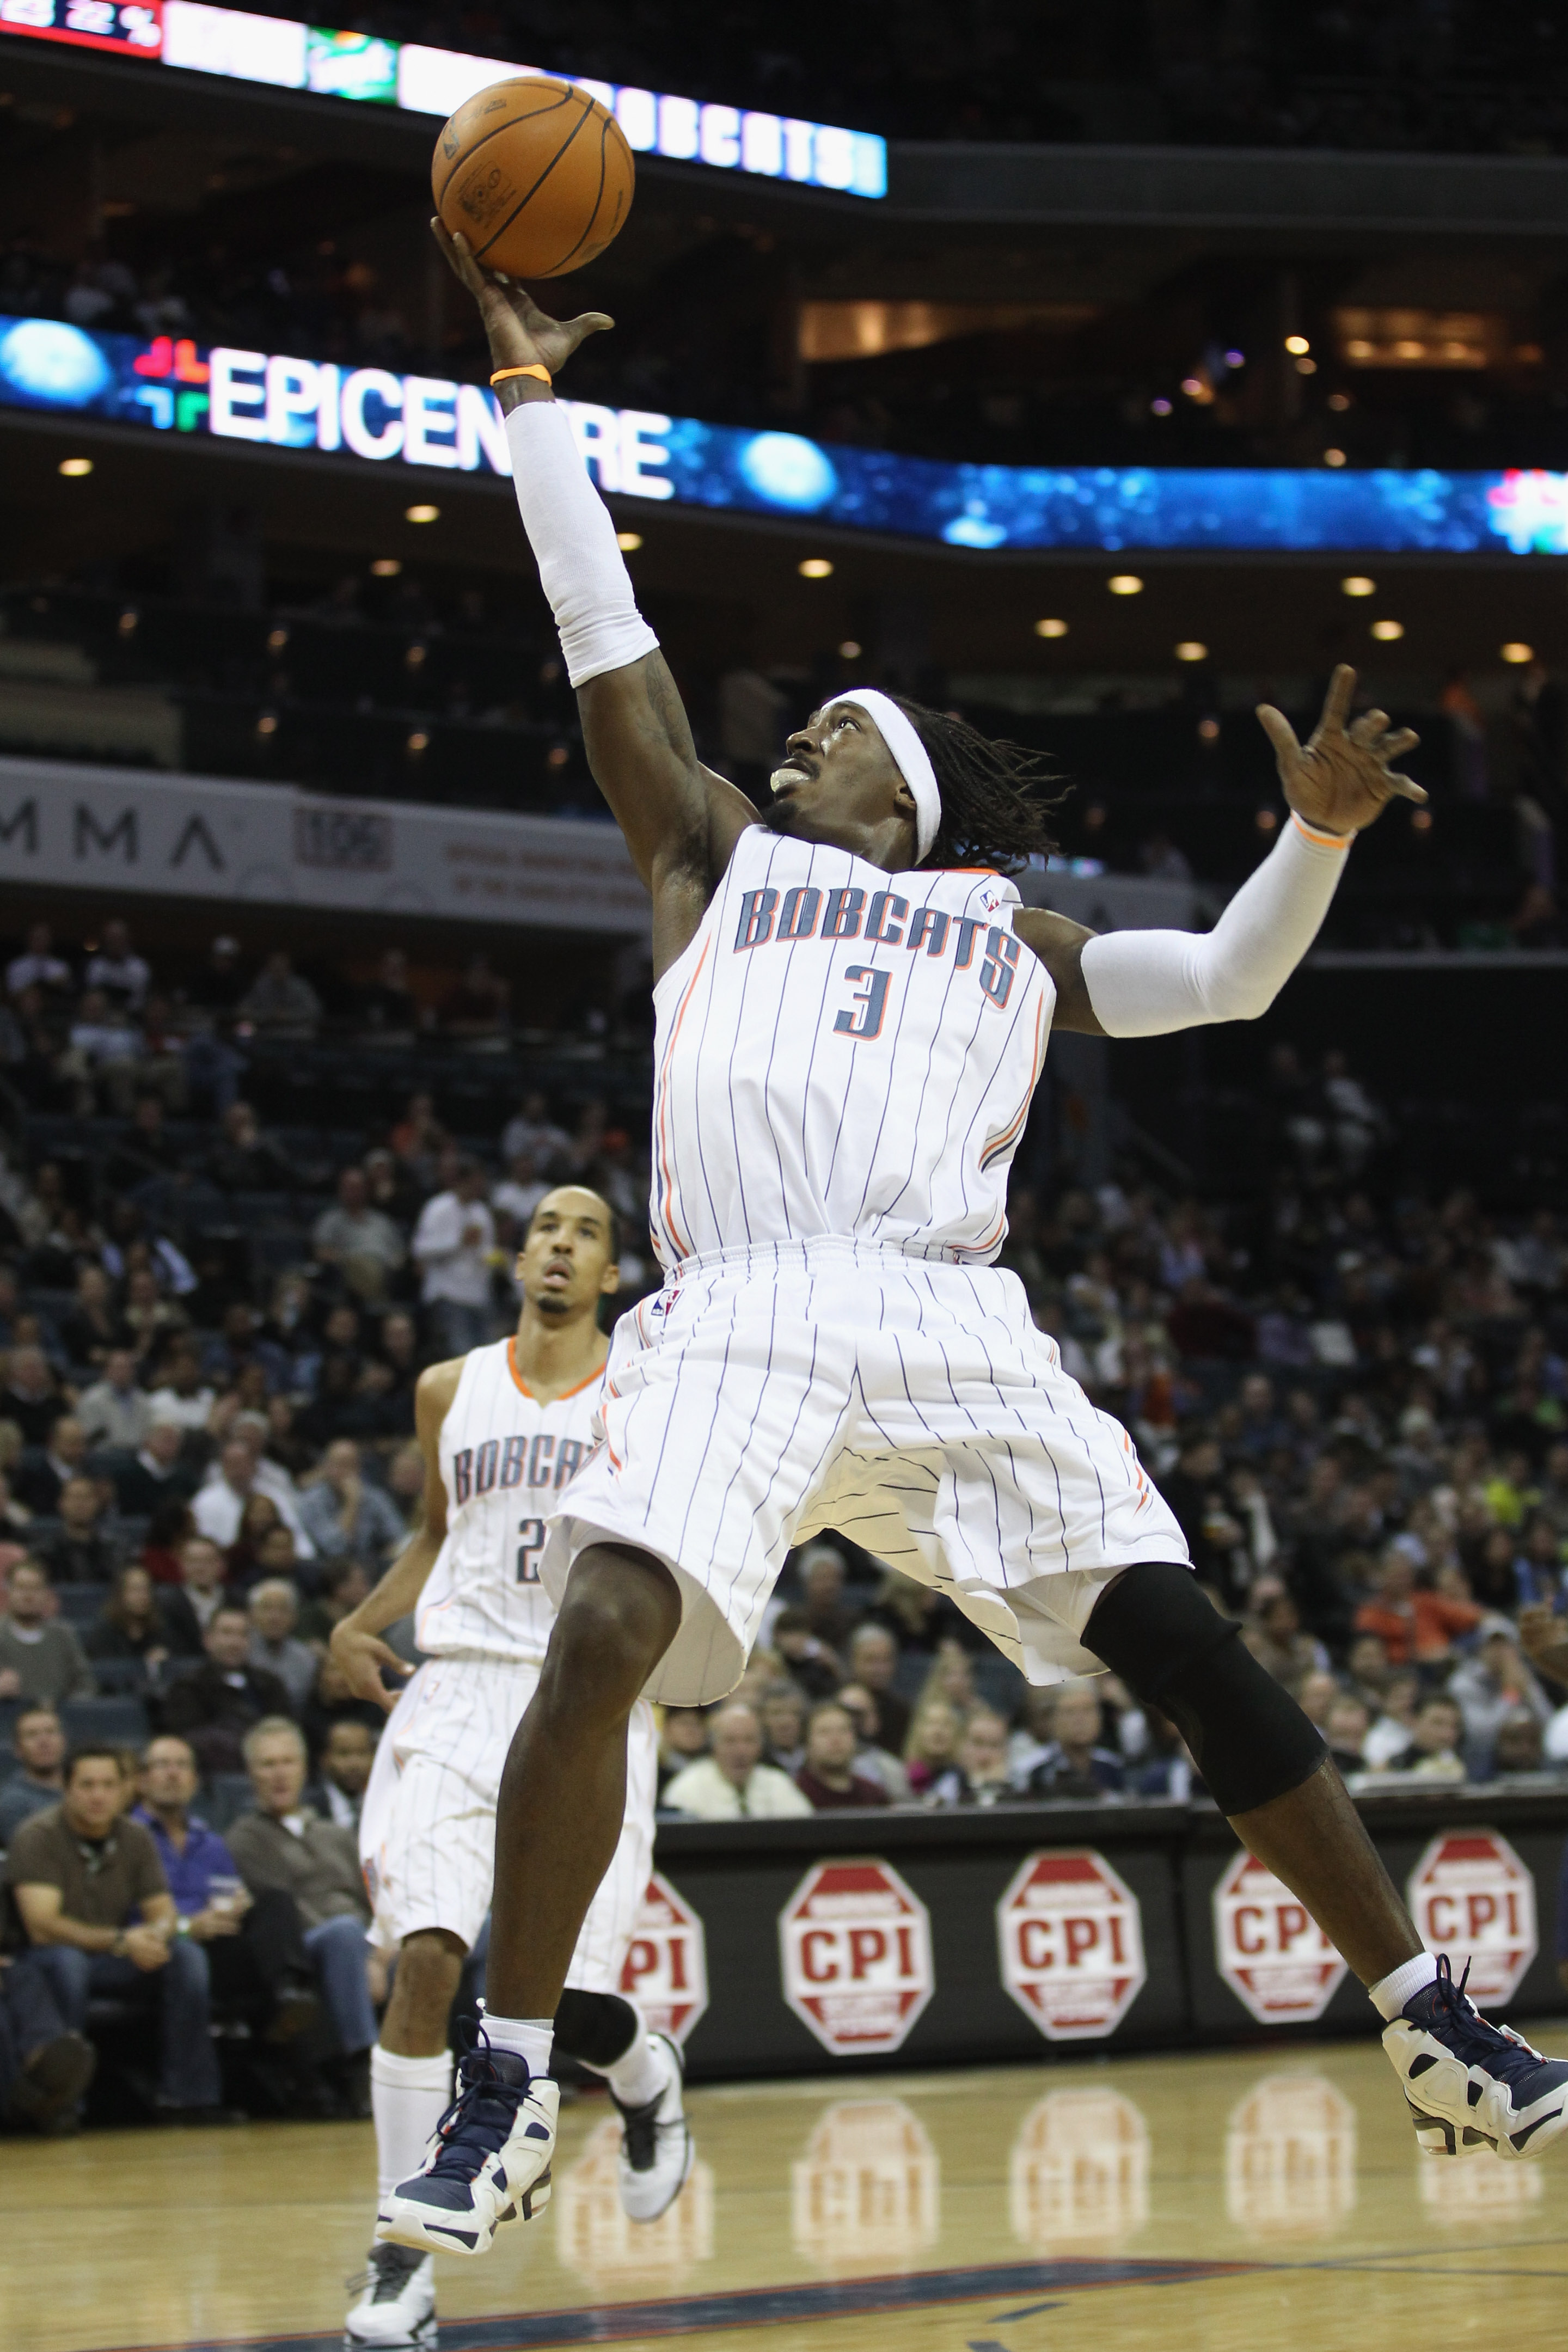 CHARLOTTE, NC - DECEMBER 07:  Gerald Wallace #3 of the Charlotte Bobcats against the Denver Nuggets during their game at Time Warner Cable Arena on December 7, 2010 in Charlotte, North Carolina.  NOTE TO USER: User expressly acknowledges and agrees that,